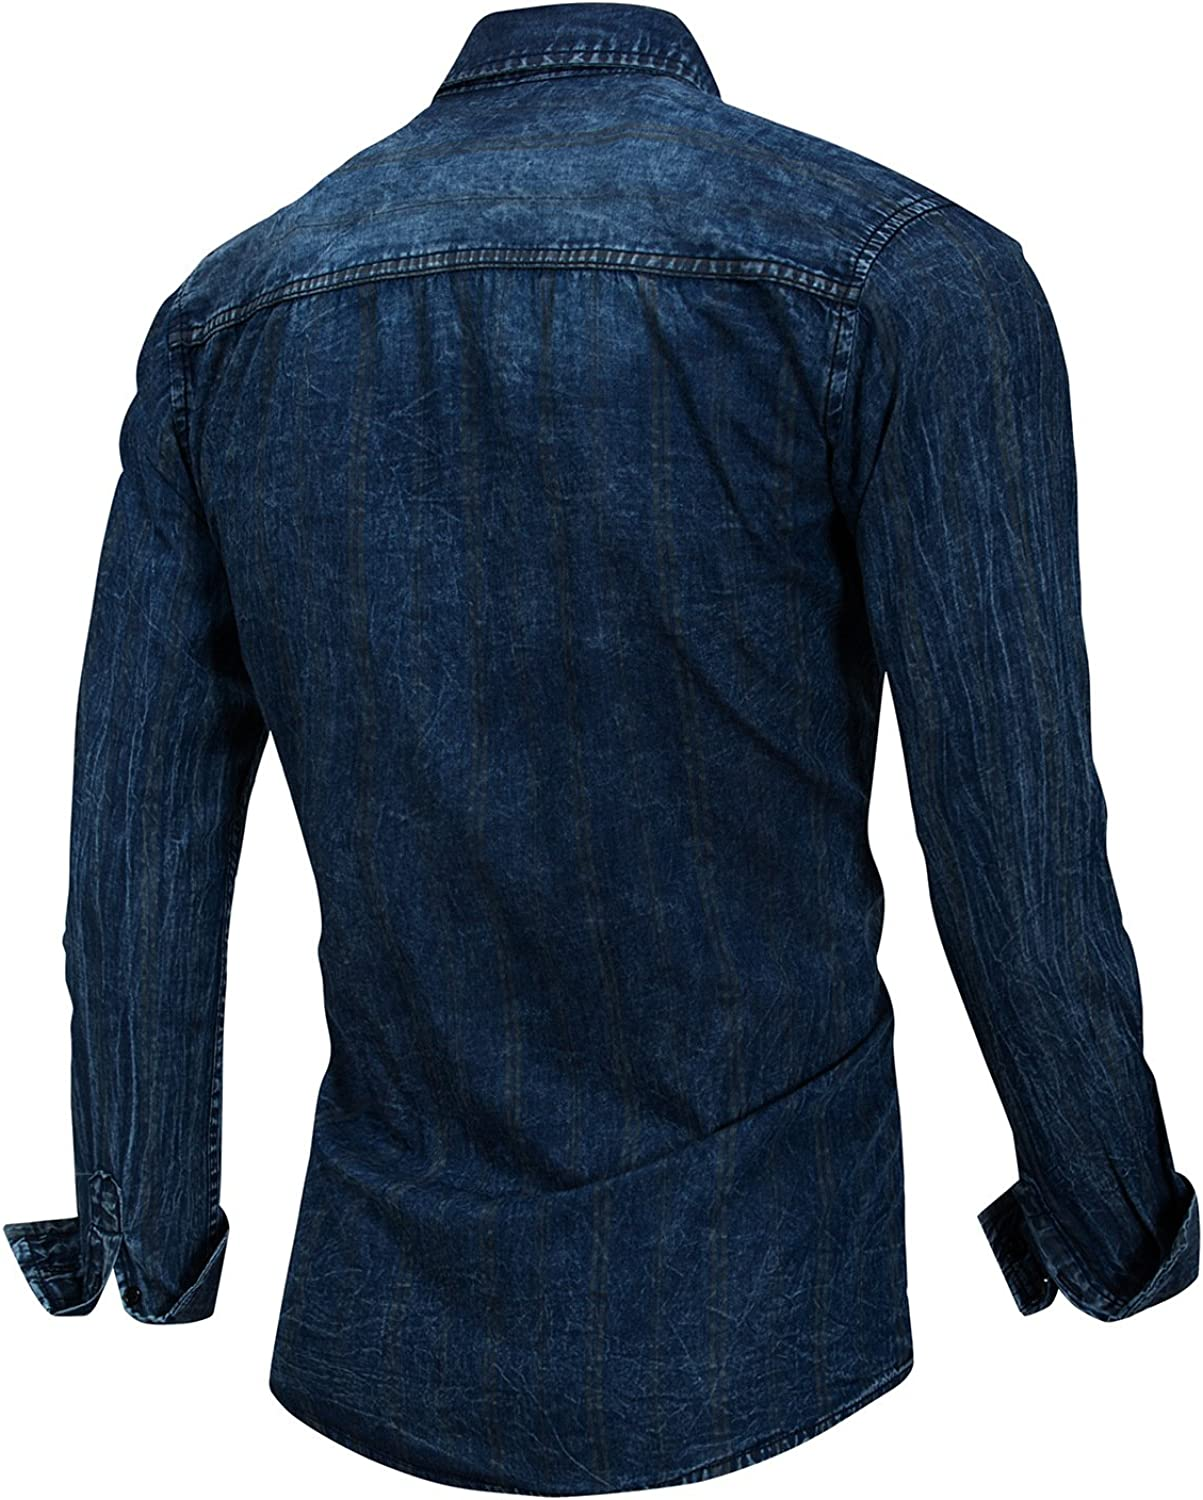 Mens Button-Down Collar Long Sleeve Jeans Blue Cotton Classical Style Casual Dress Shirts